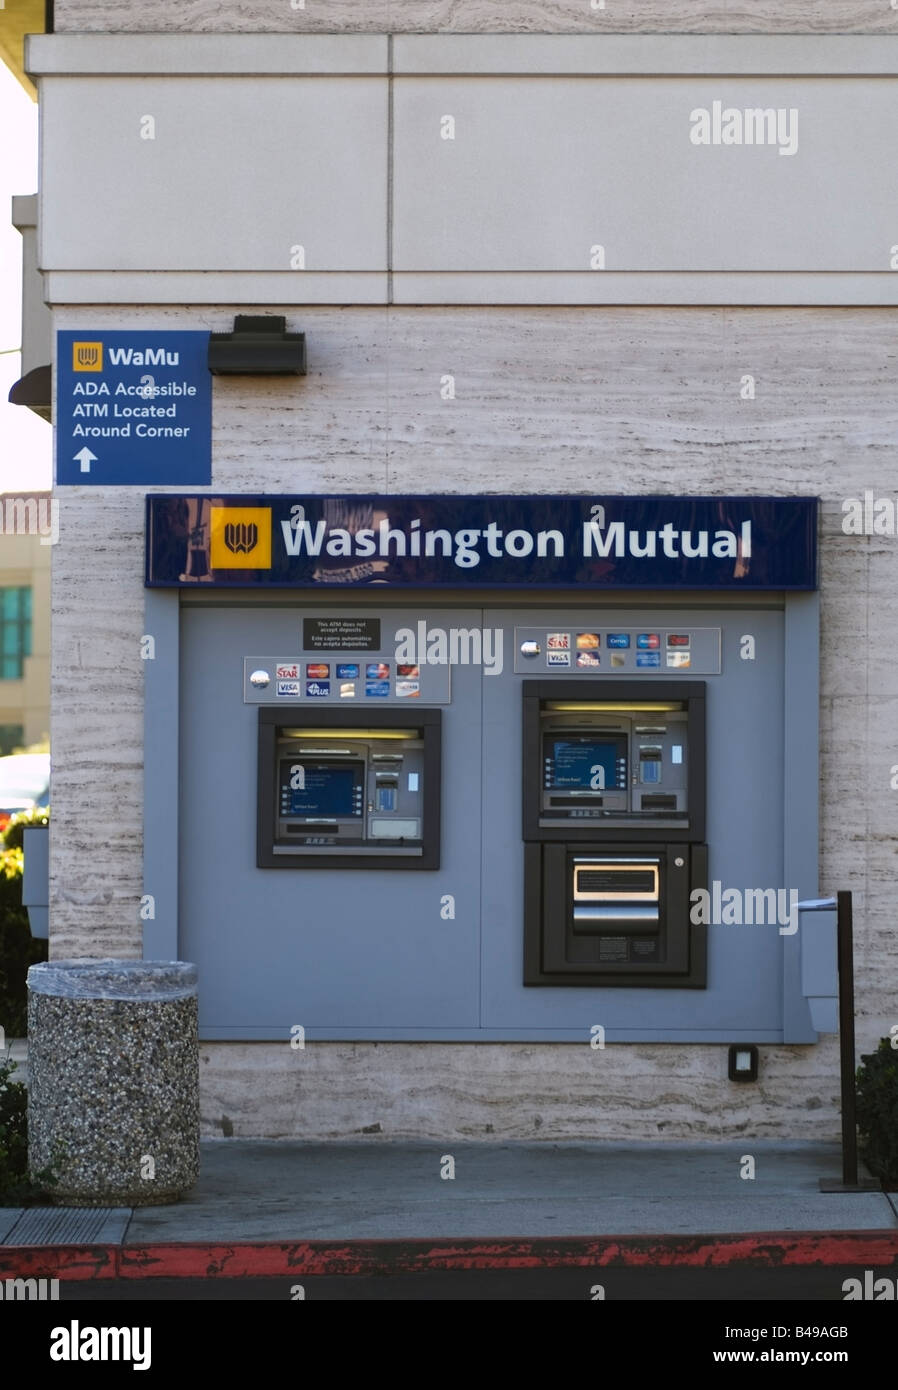 Washington Mutual (WaMu) ATM machine outside of a Branch in San Jose, CA. Stock Photo